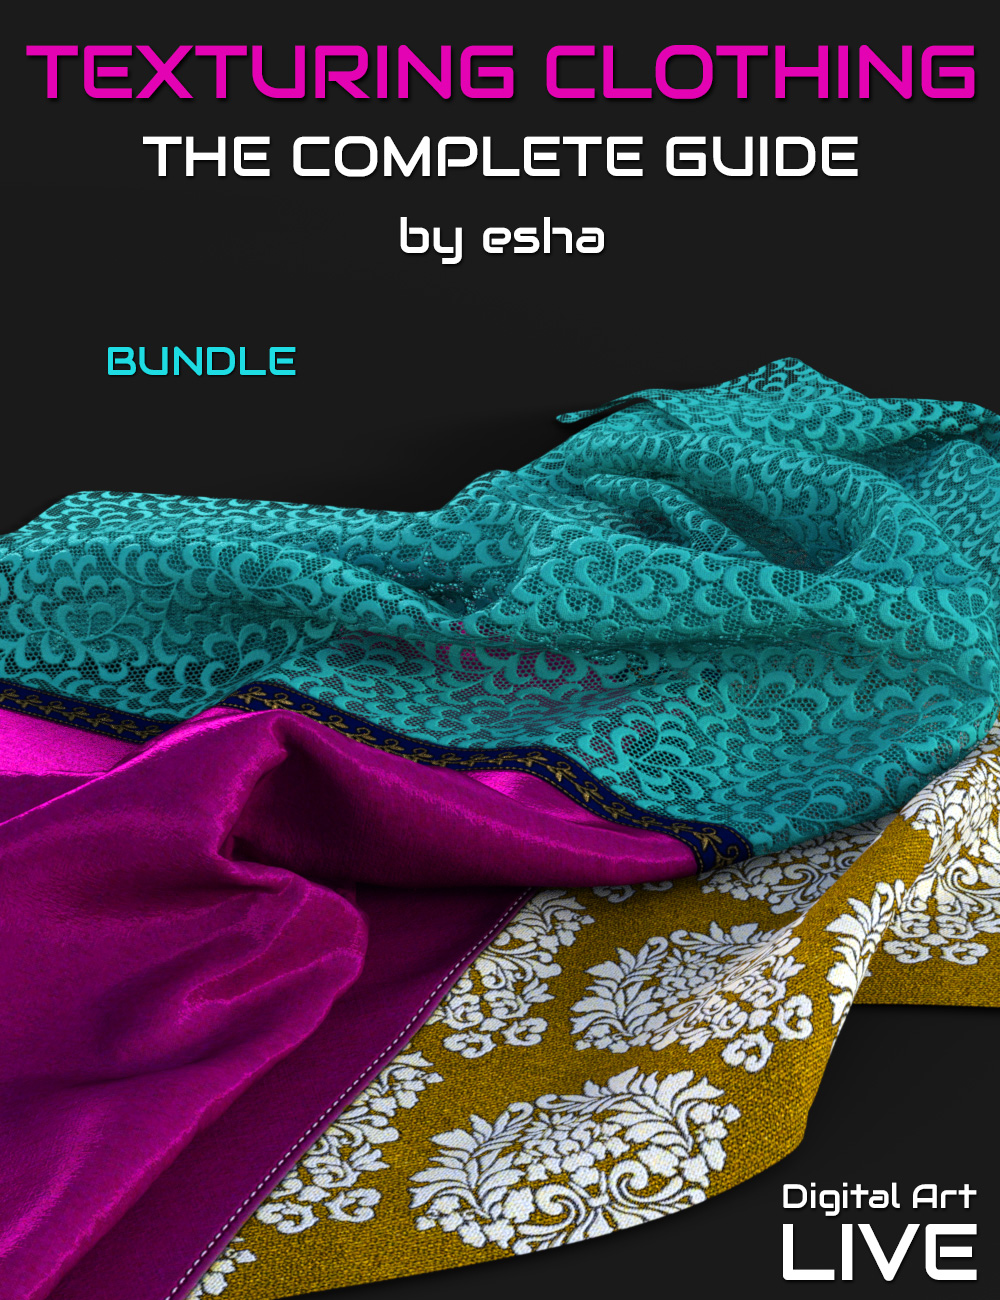 The Complete Guide to Texturing Clothing - Bundle by: eshaCganDigital Art Live, 3D Models by Daz 3D